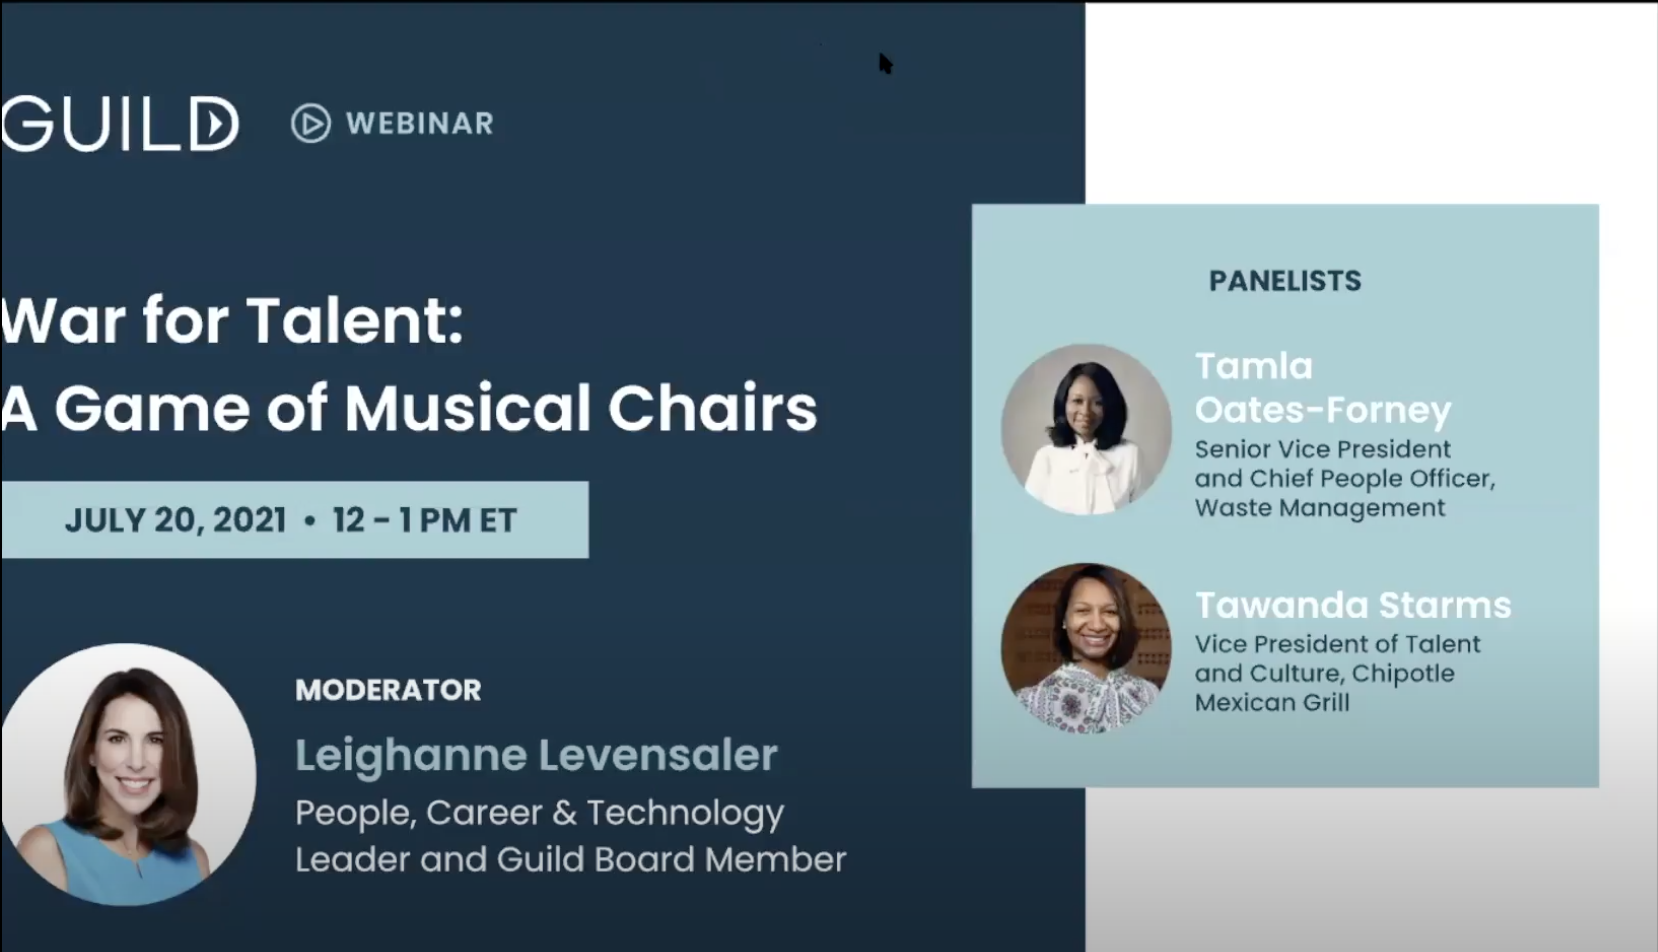 War for Talent: A Game of Musical Chairs